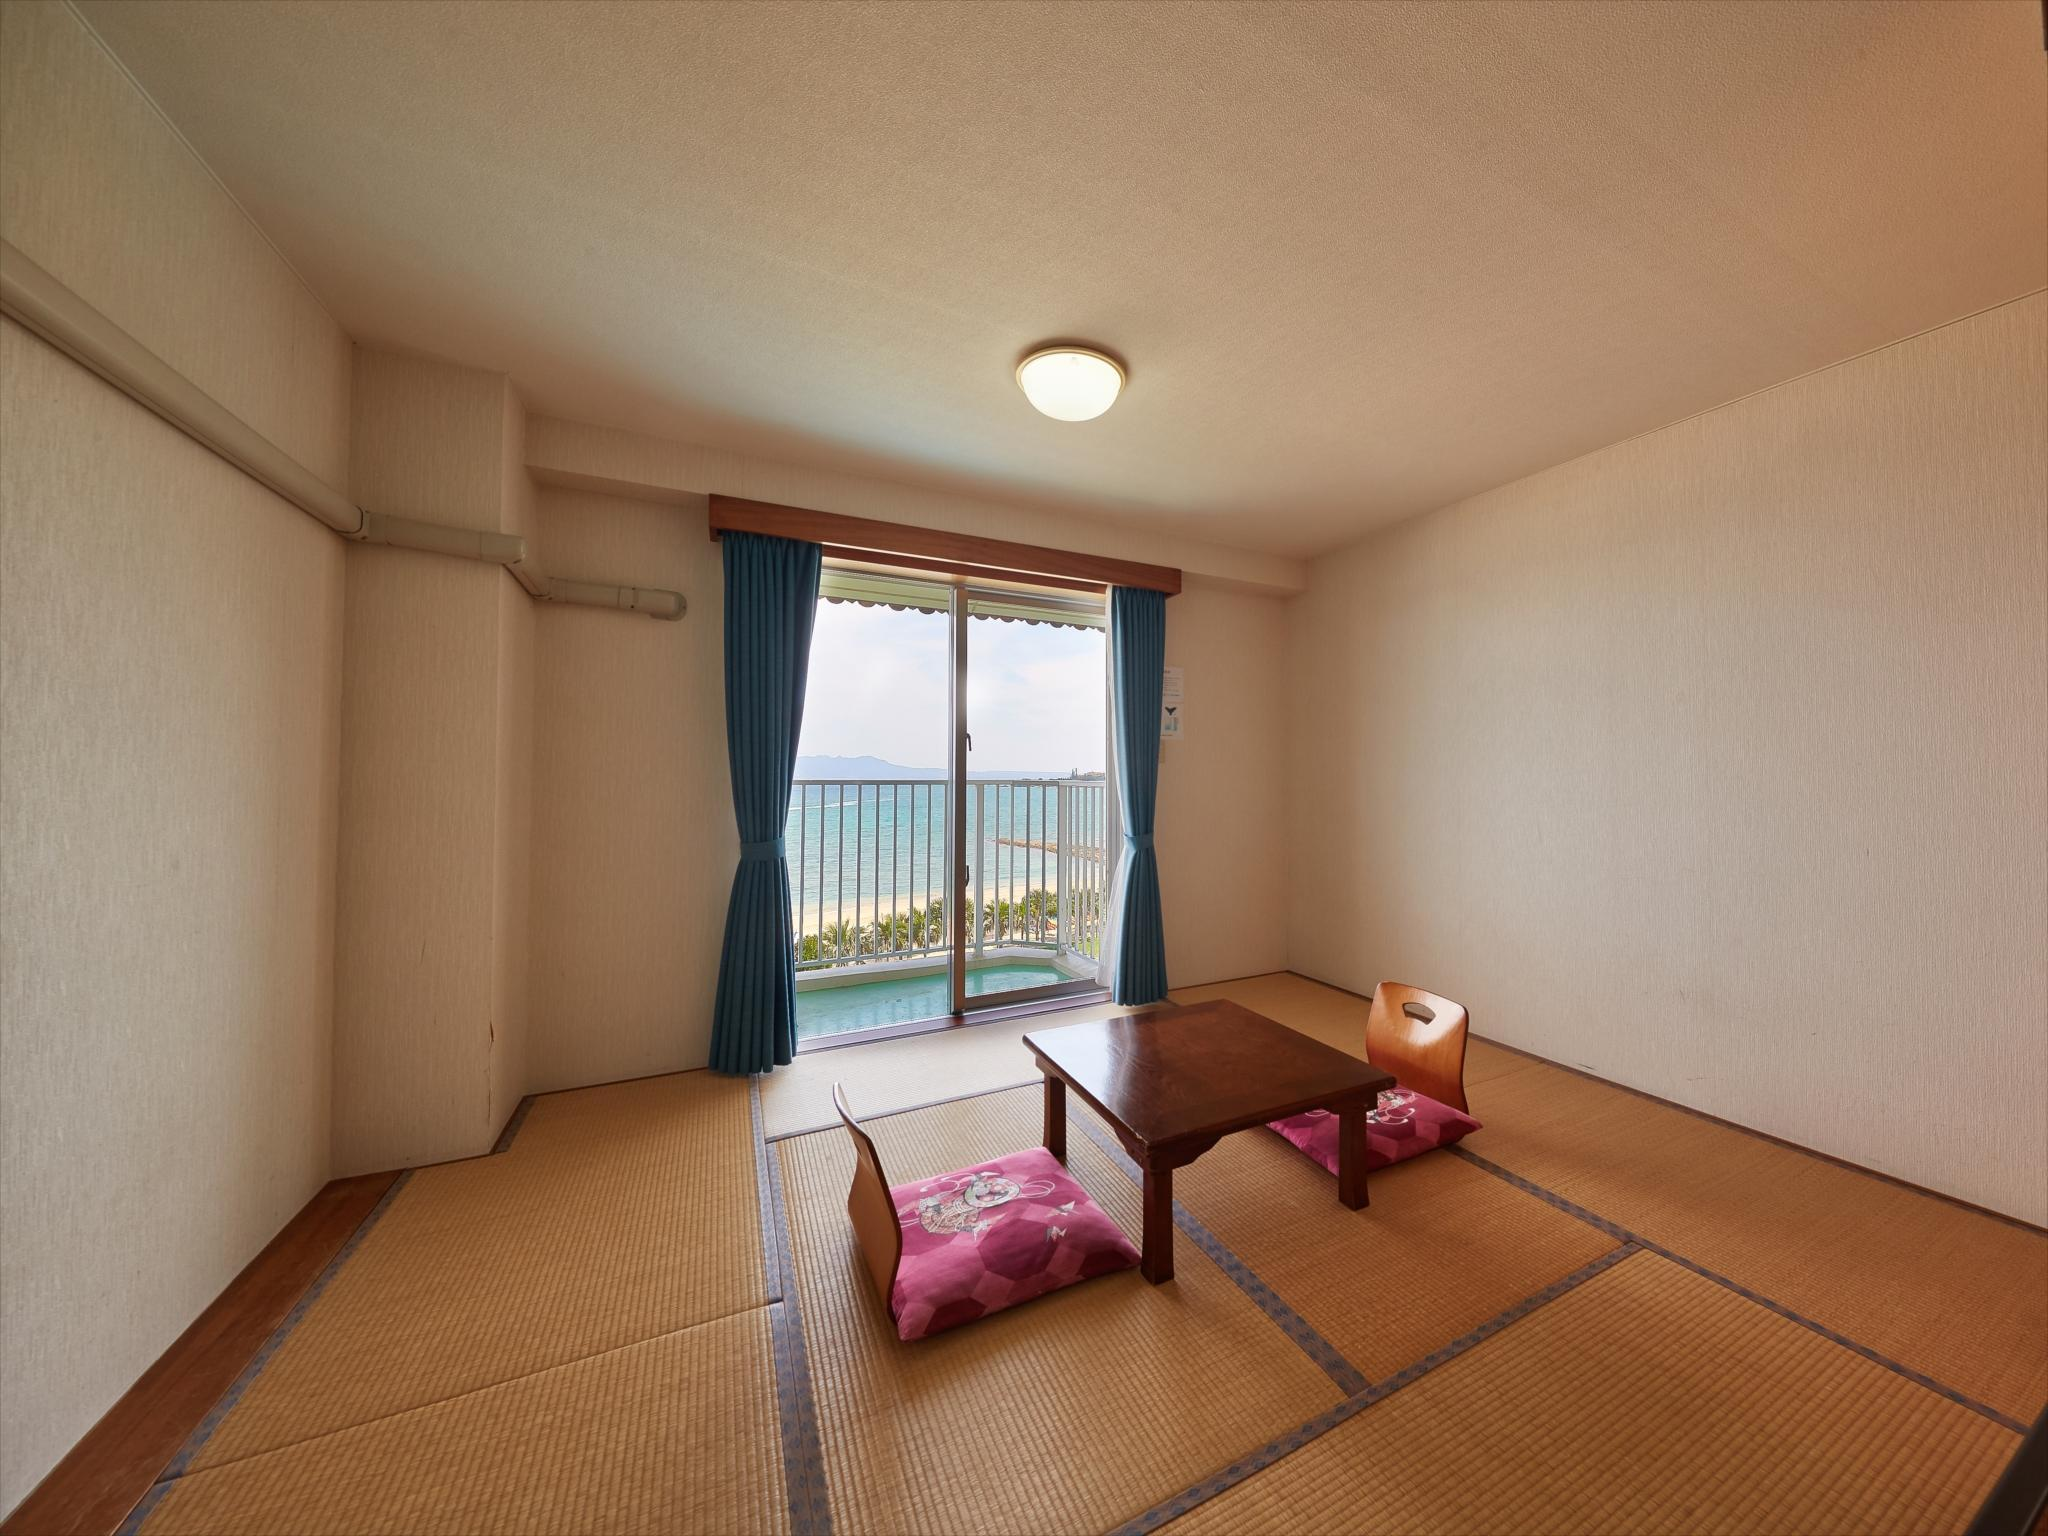 Tatami alaga standardtuba 4 inimesele (Standard Room with Tatami Area for 4 People)